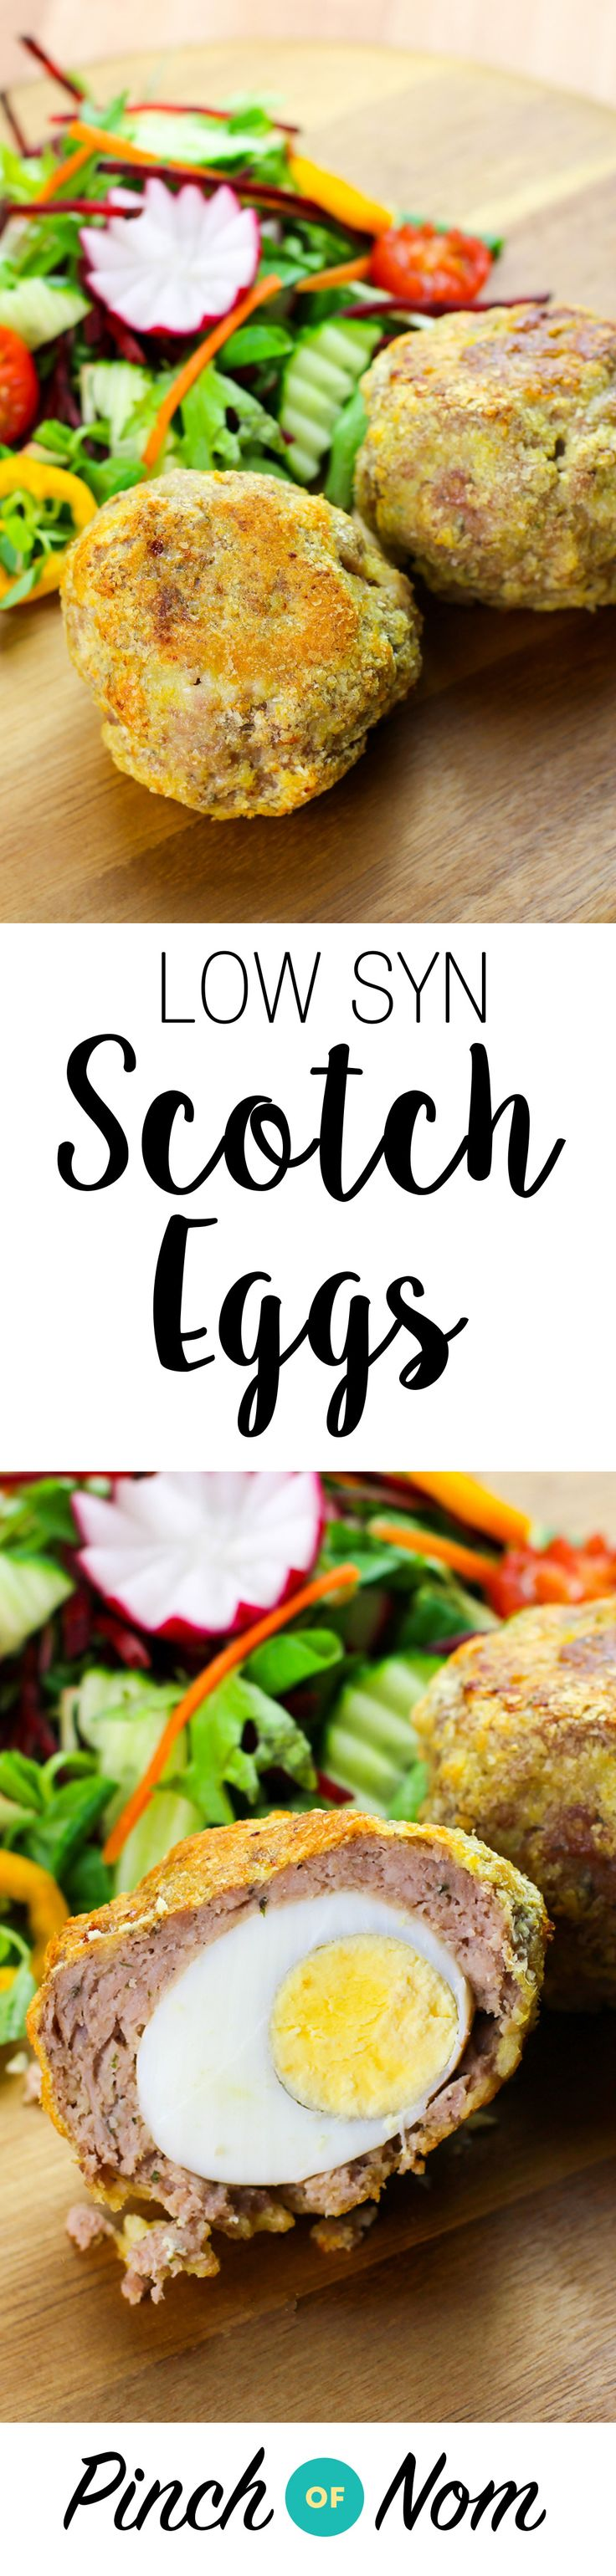 Low Syn Scotch Eggs | Slimming World - http://pinchofnom.com/recipes/low-syn-scotch-eggs-slimming-world/ (food tips slimming world)